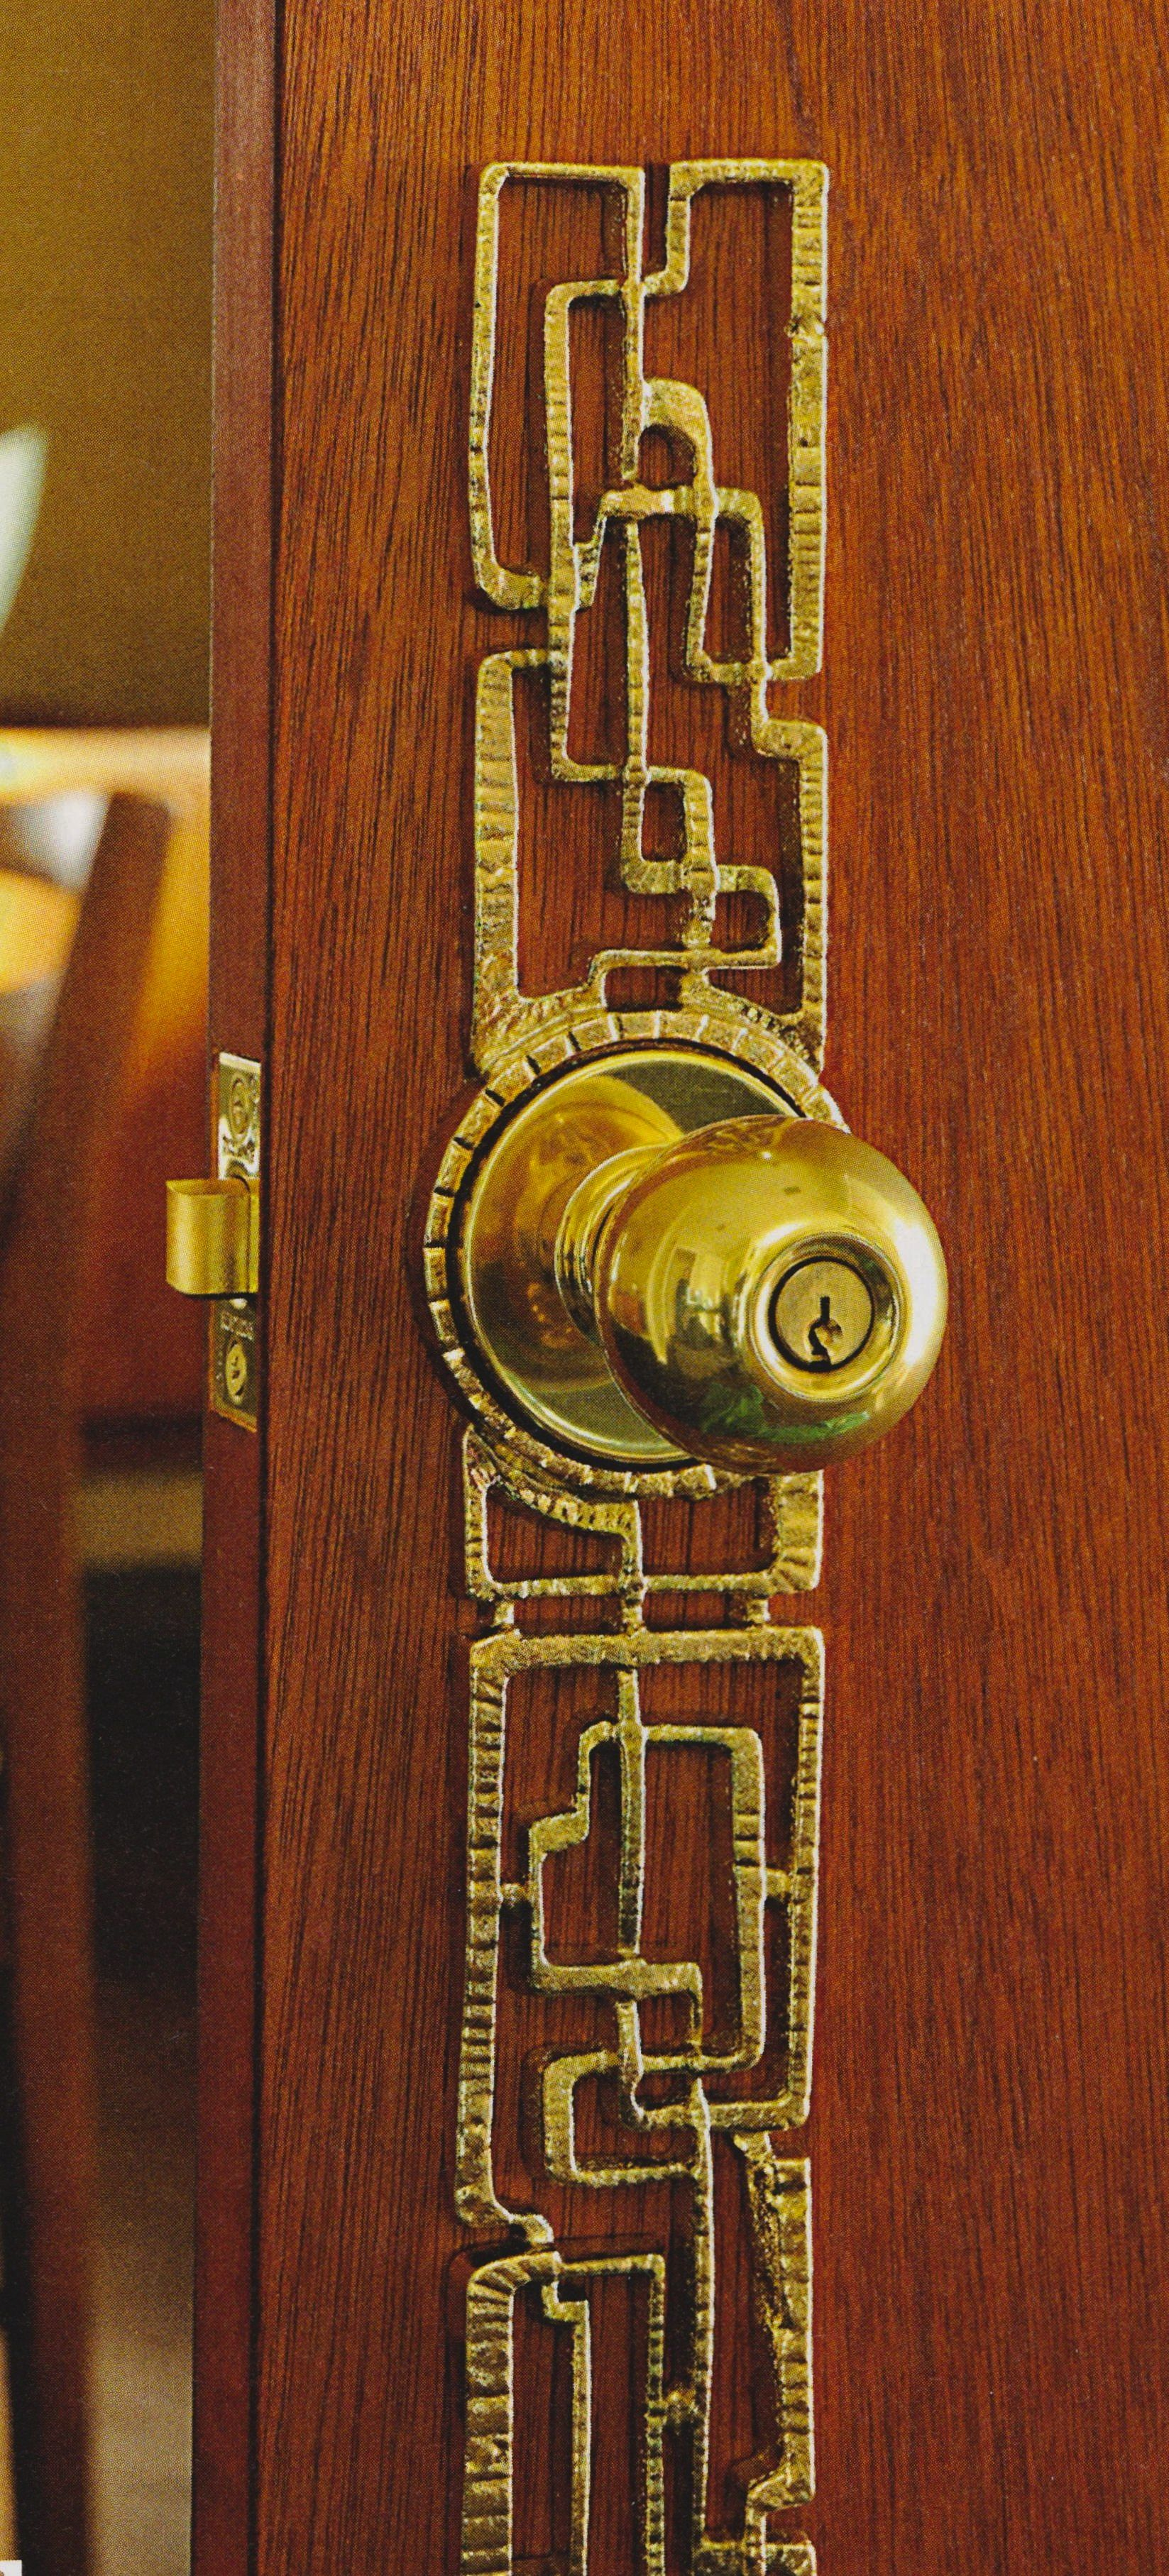 Merveilleux Mid Century Door Hardware   Google Search Who Knew This Kind Of Thing Was  Even Out There? I MUSTTT Have.